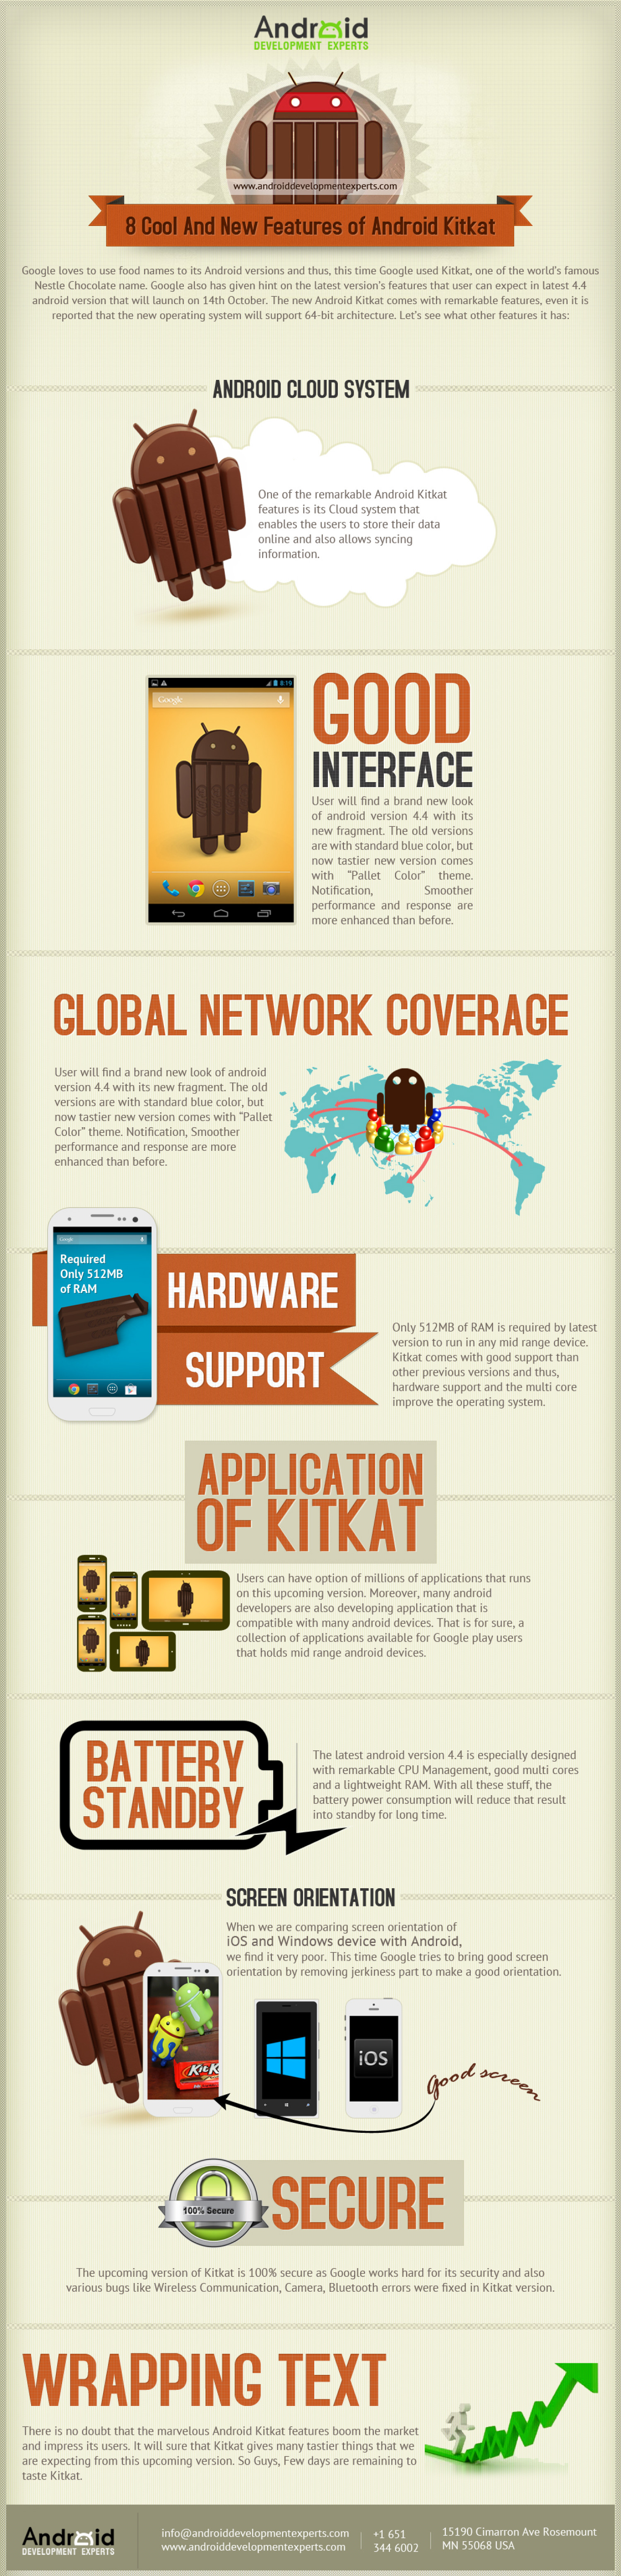 8 Cool And New Features of Android Kitkat Infographic